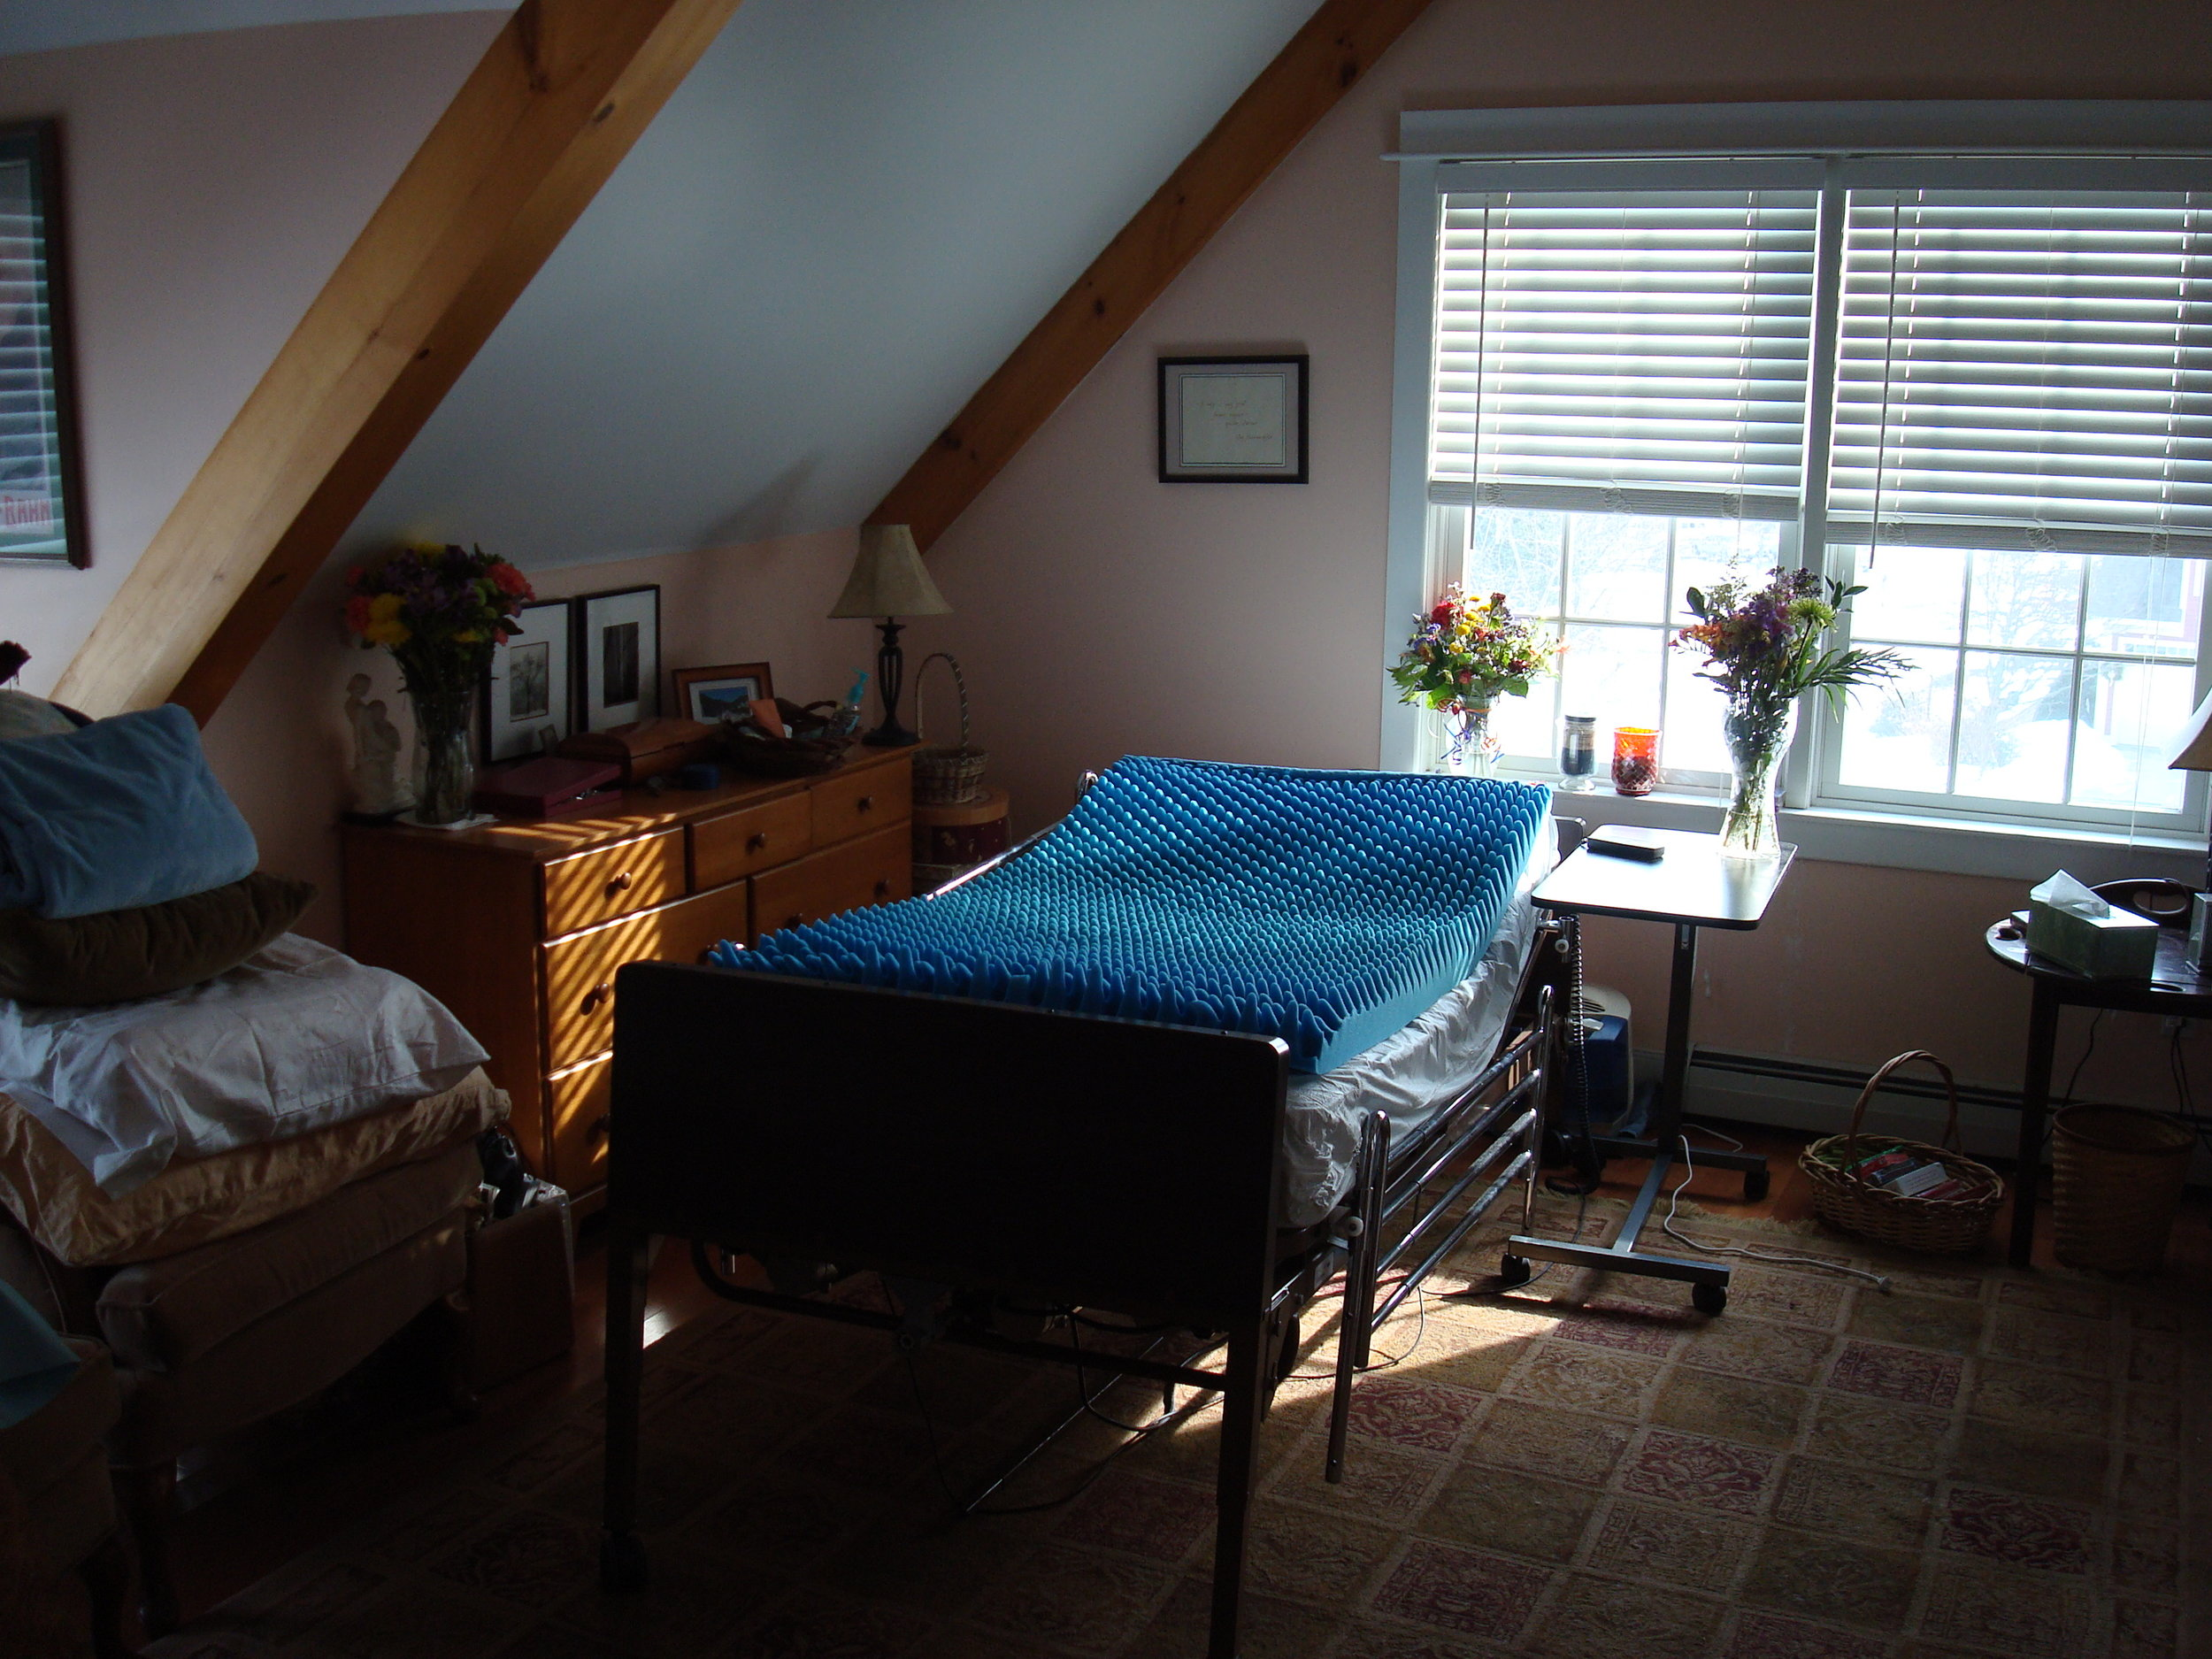 KATHY'S BED (2008)